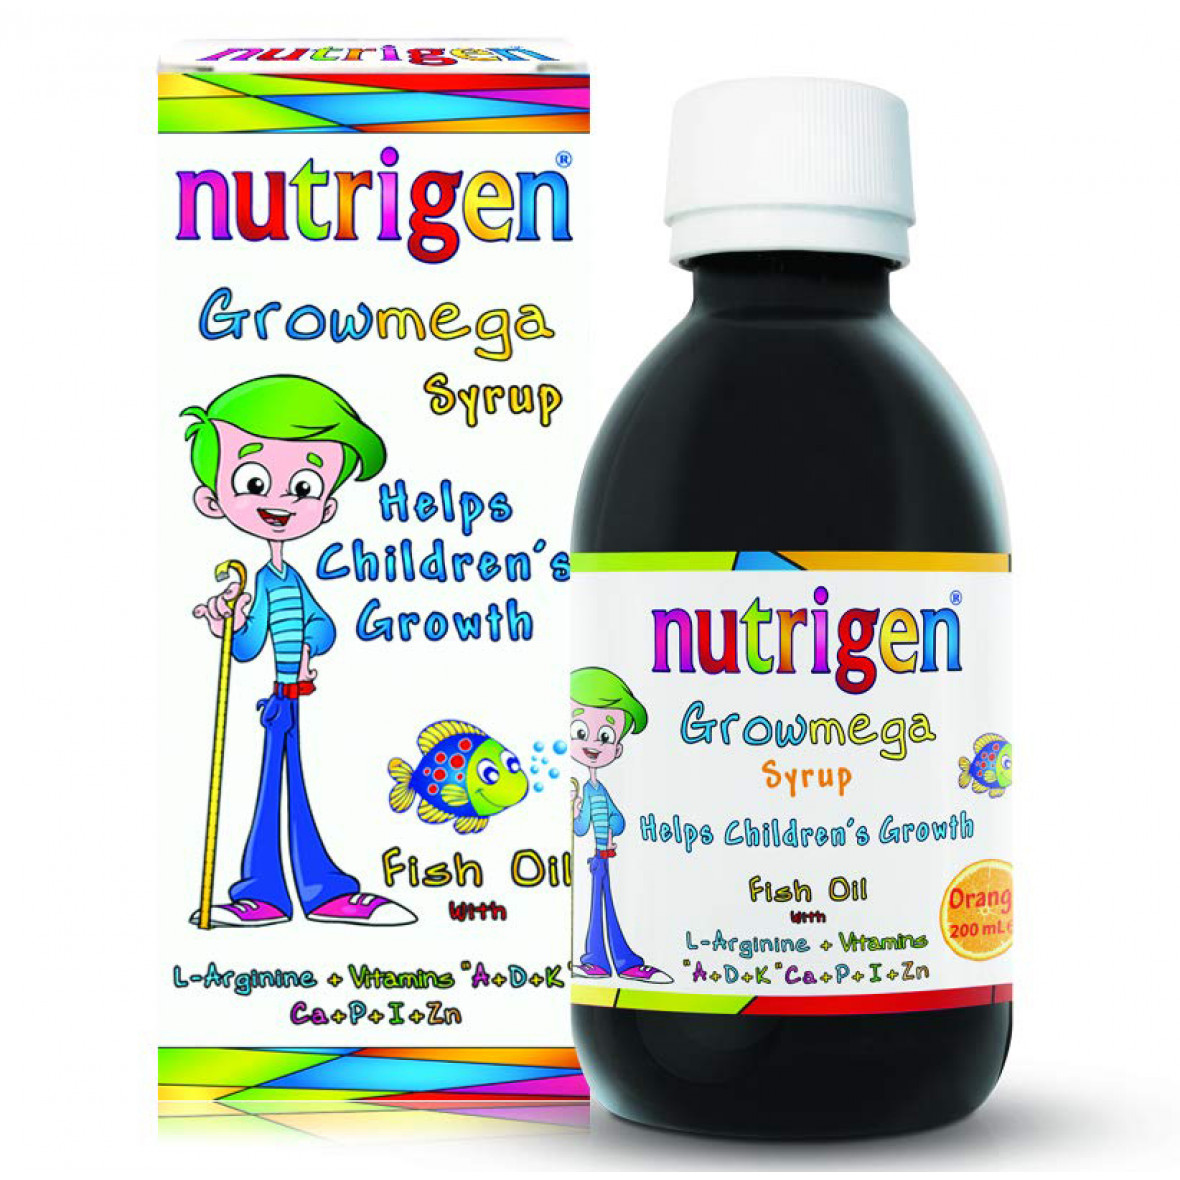 NUTRIGEN GROWMEGA SIRUP 200ml